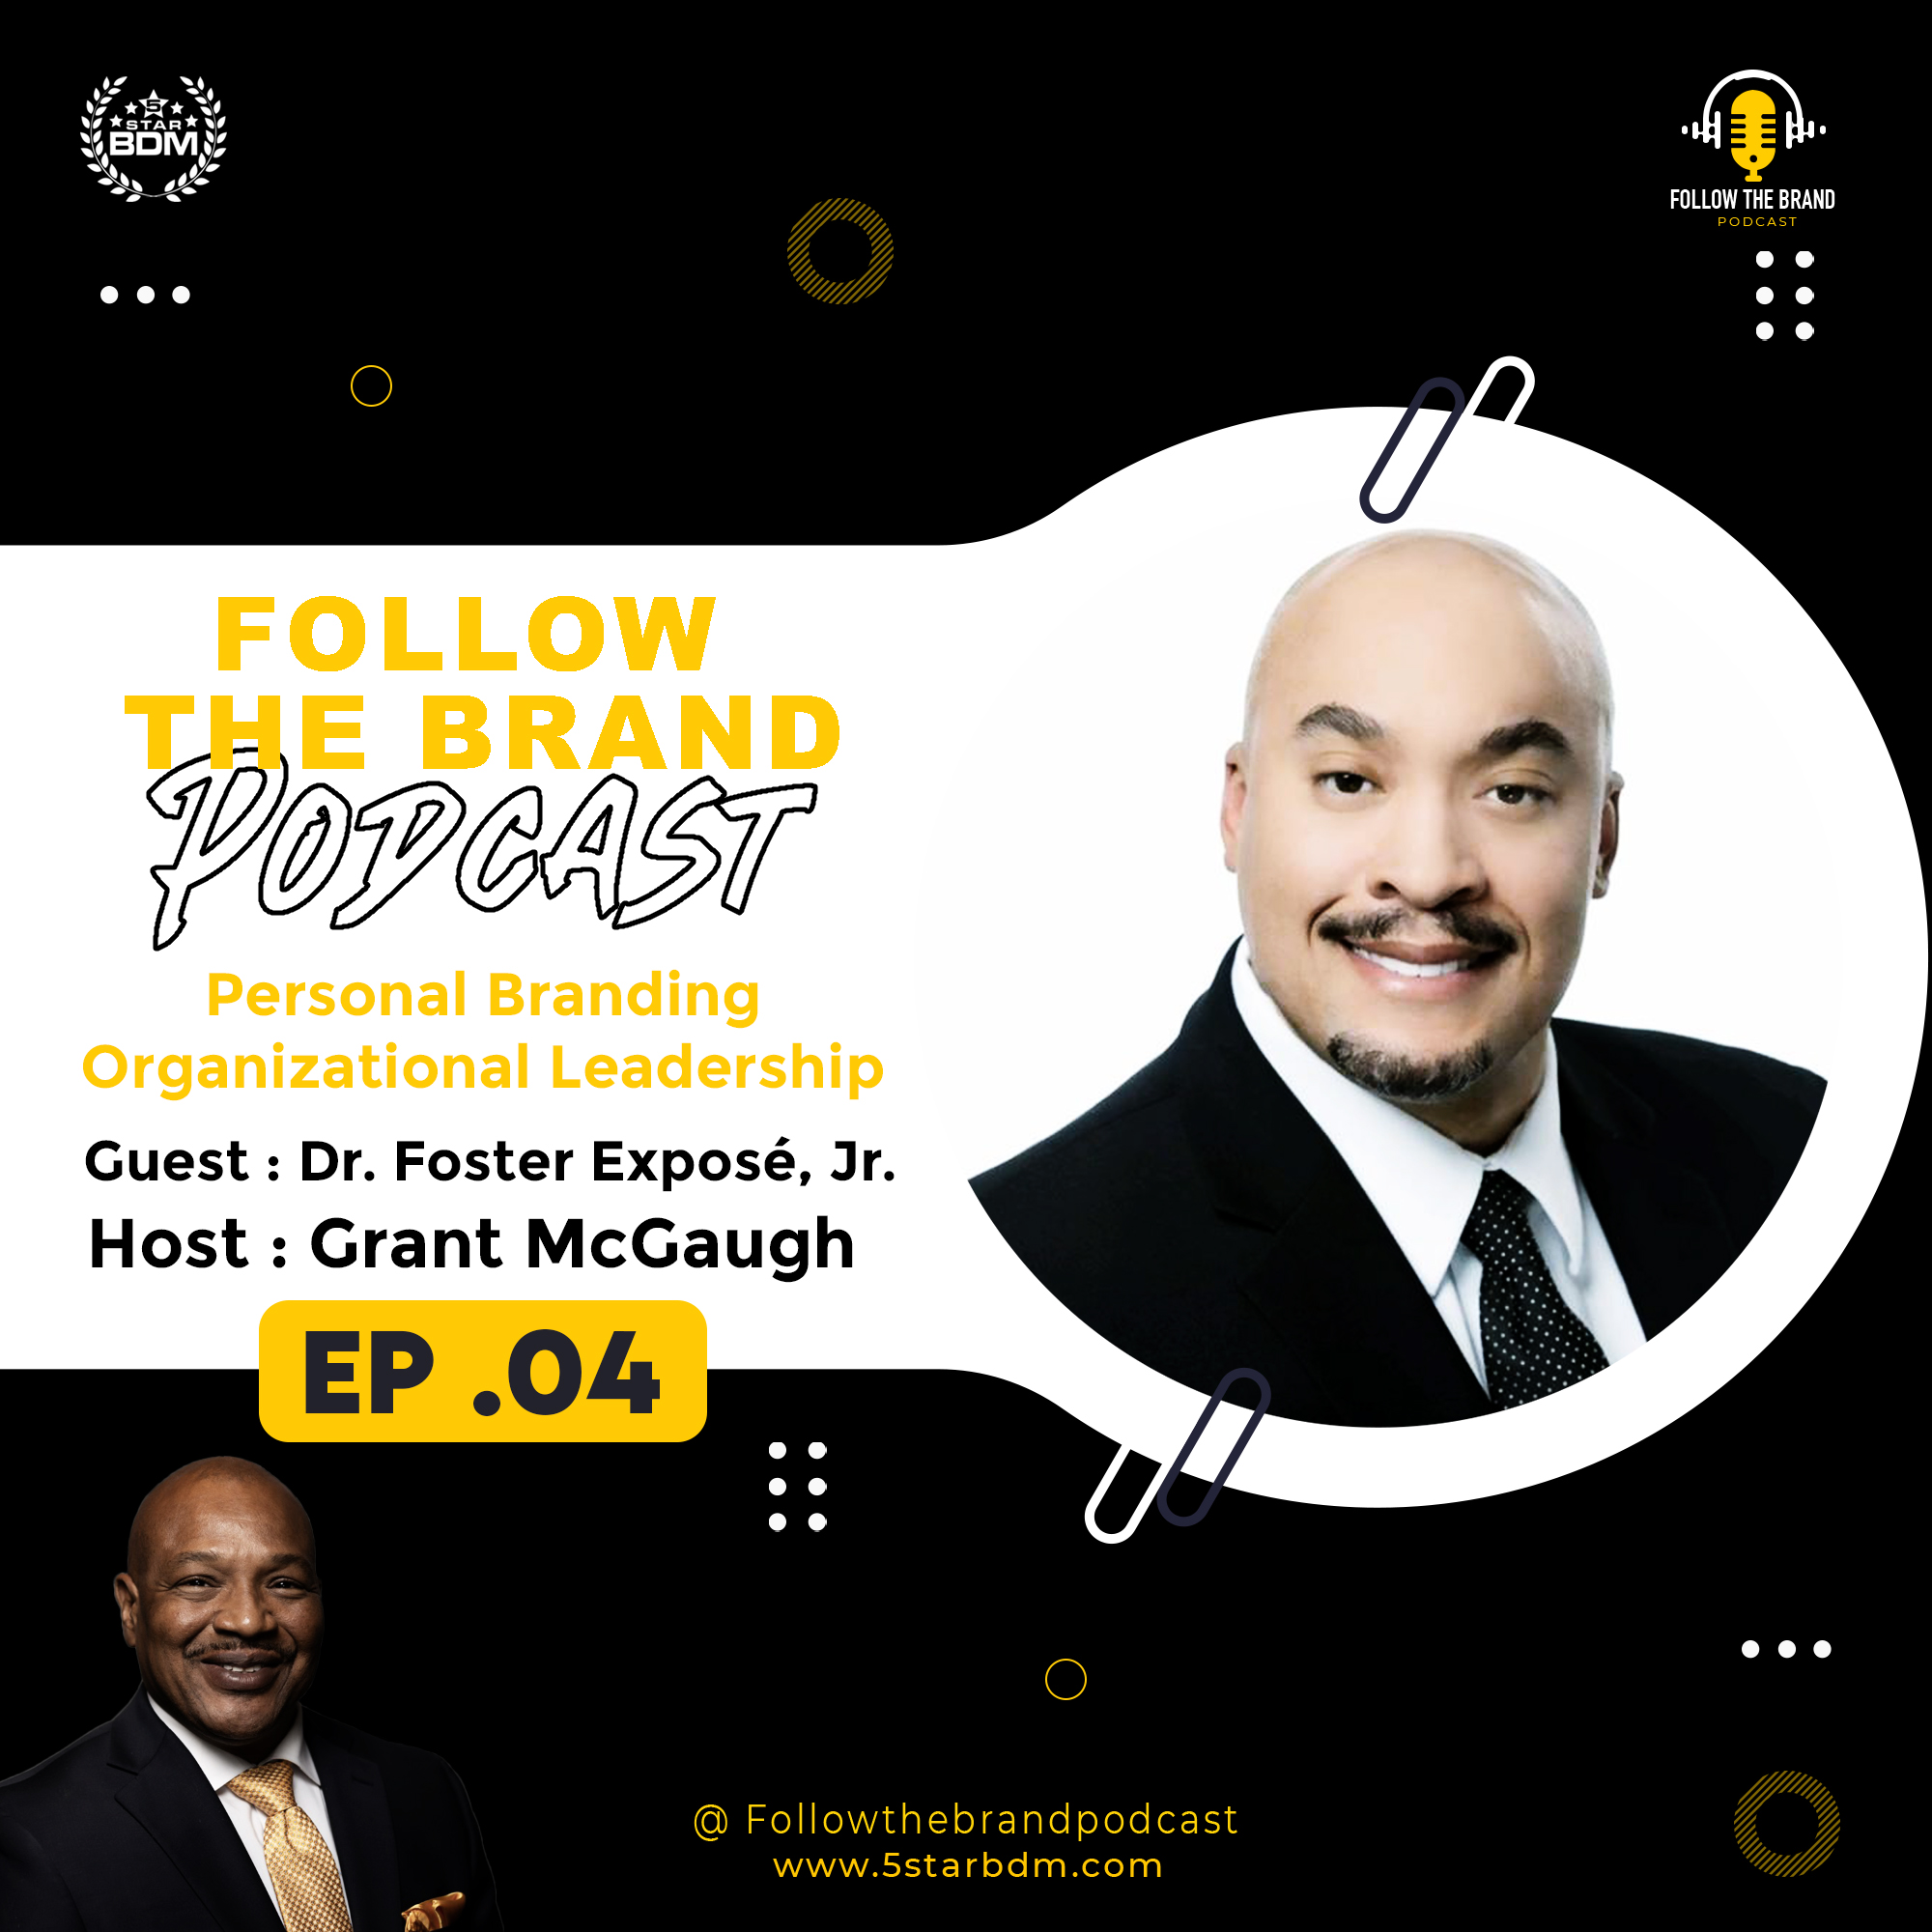 Episodes 4-Industrial Psychology with Dr. Foster Expose